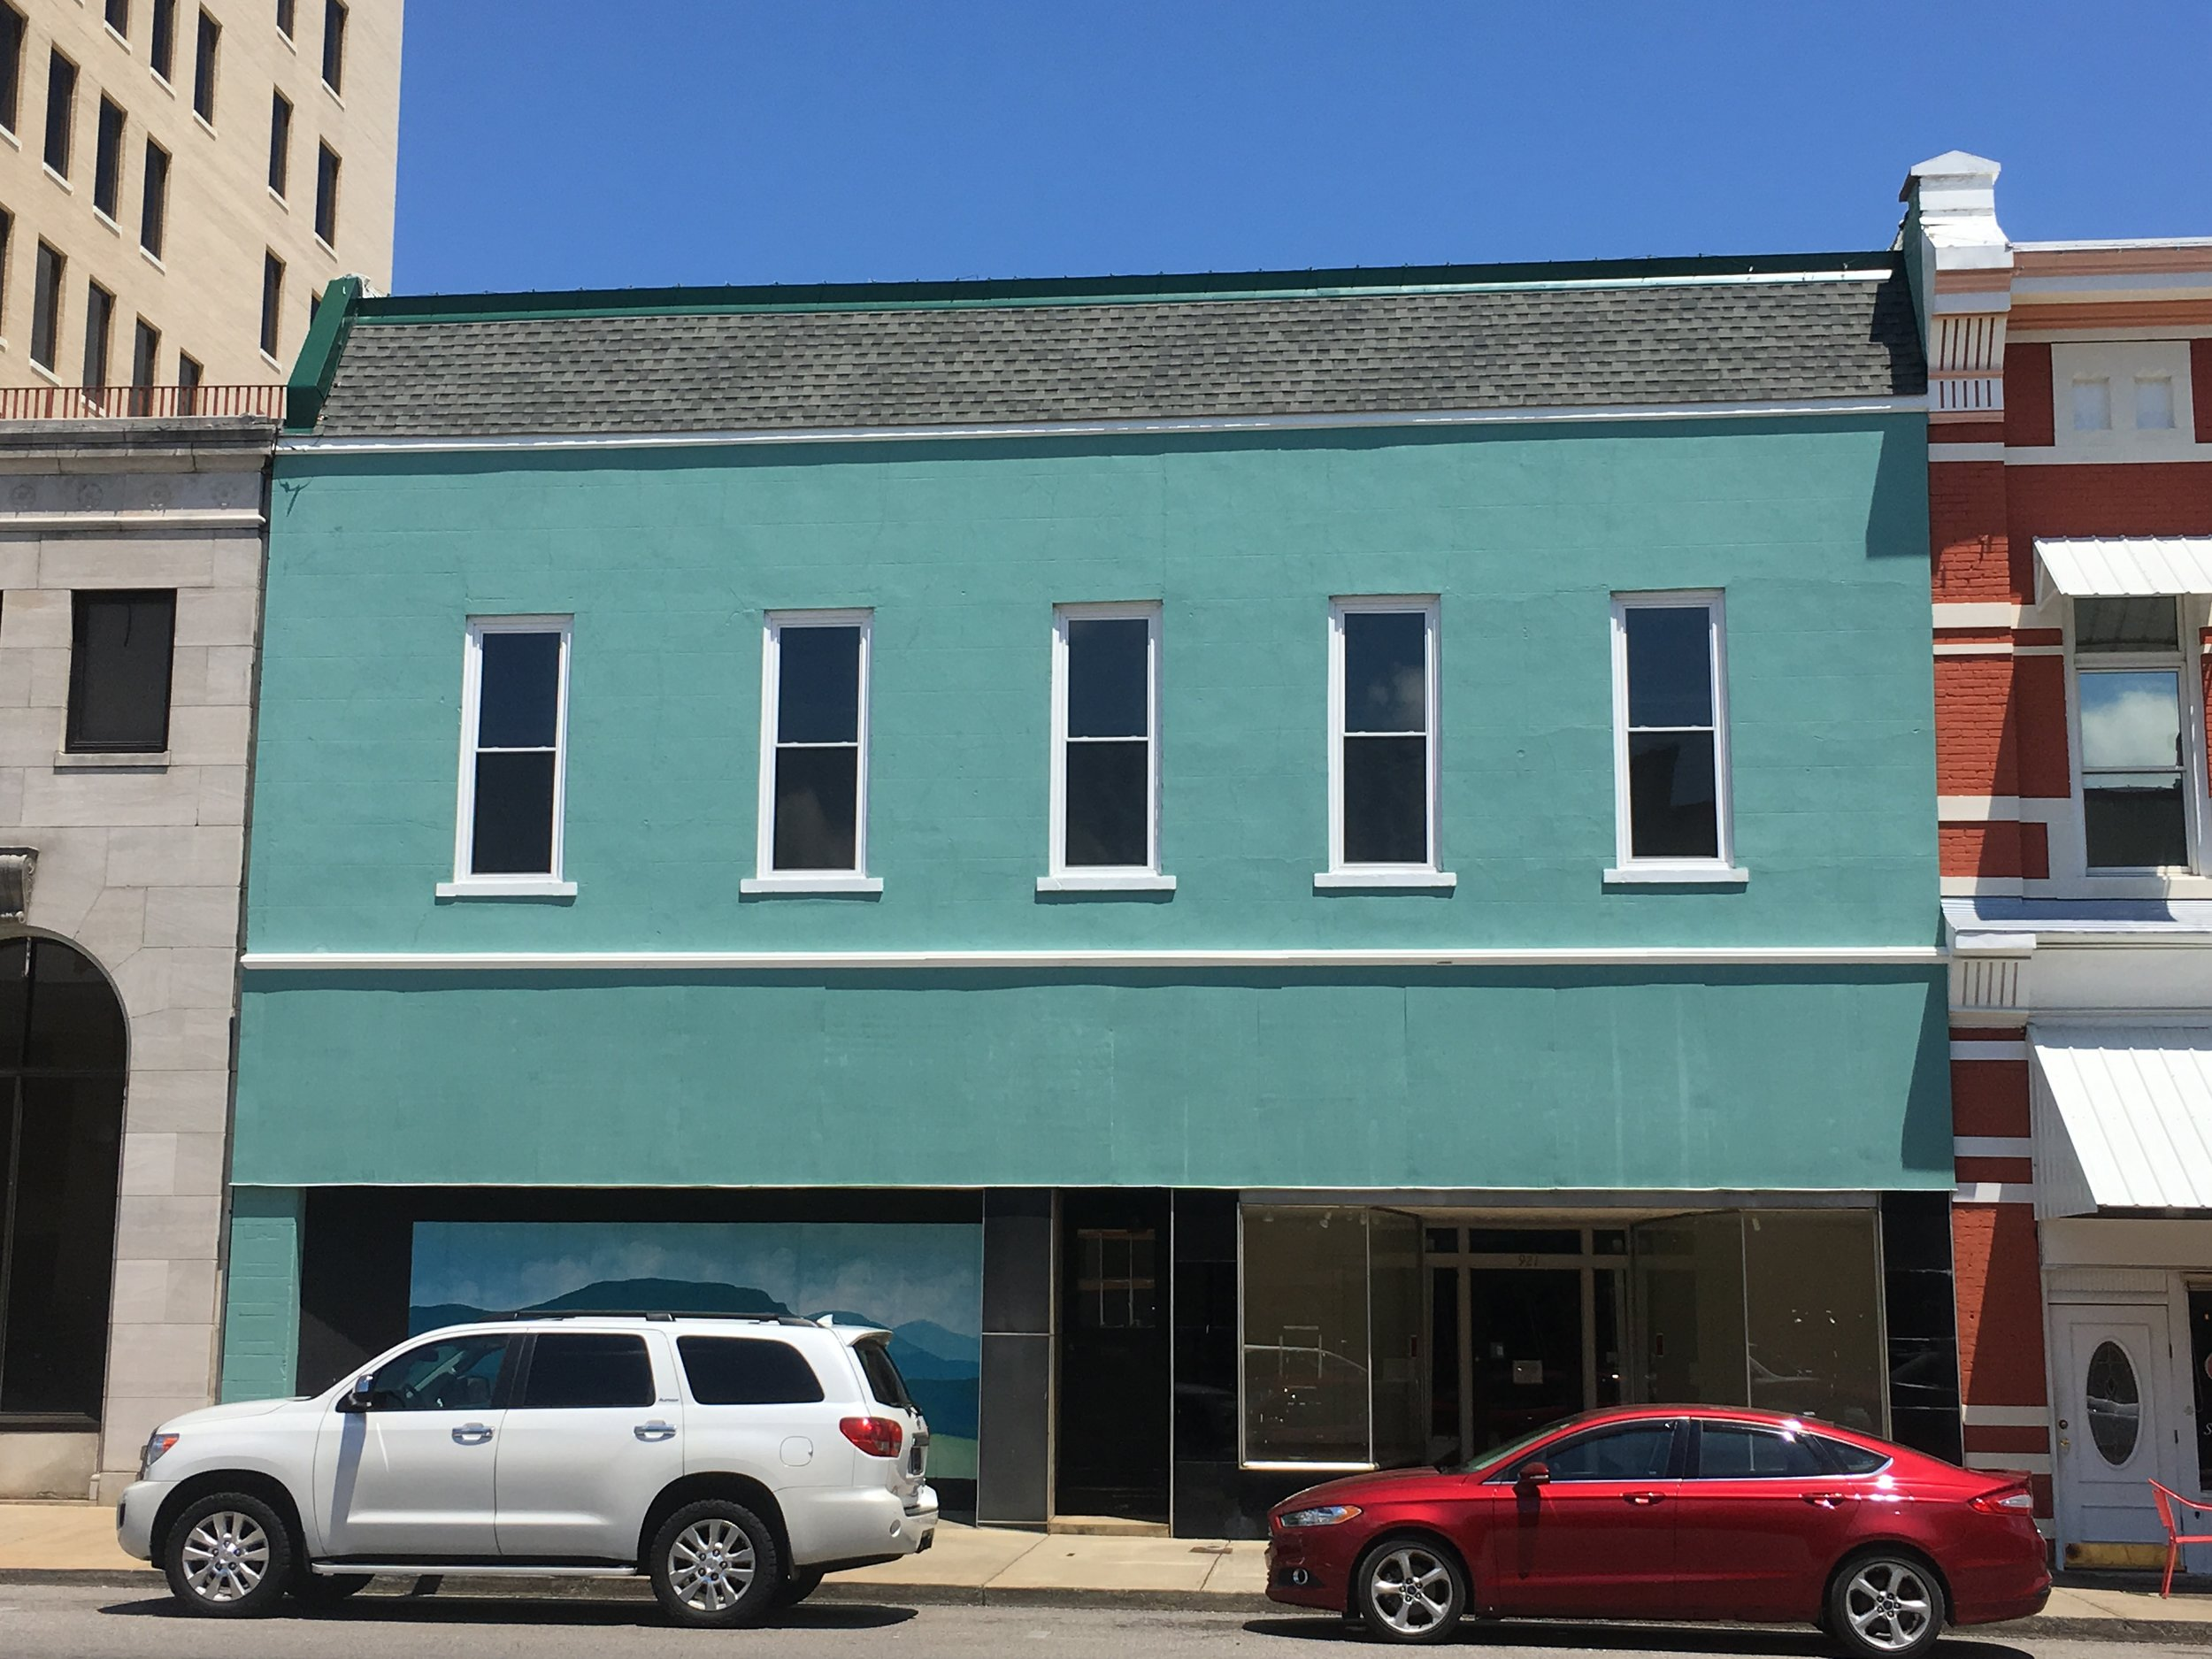 921 Noble Street - Year Built: 1920Sq. Ft.: 2,520